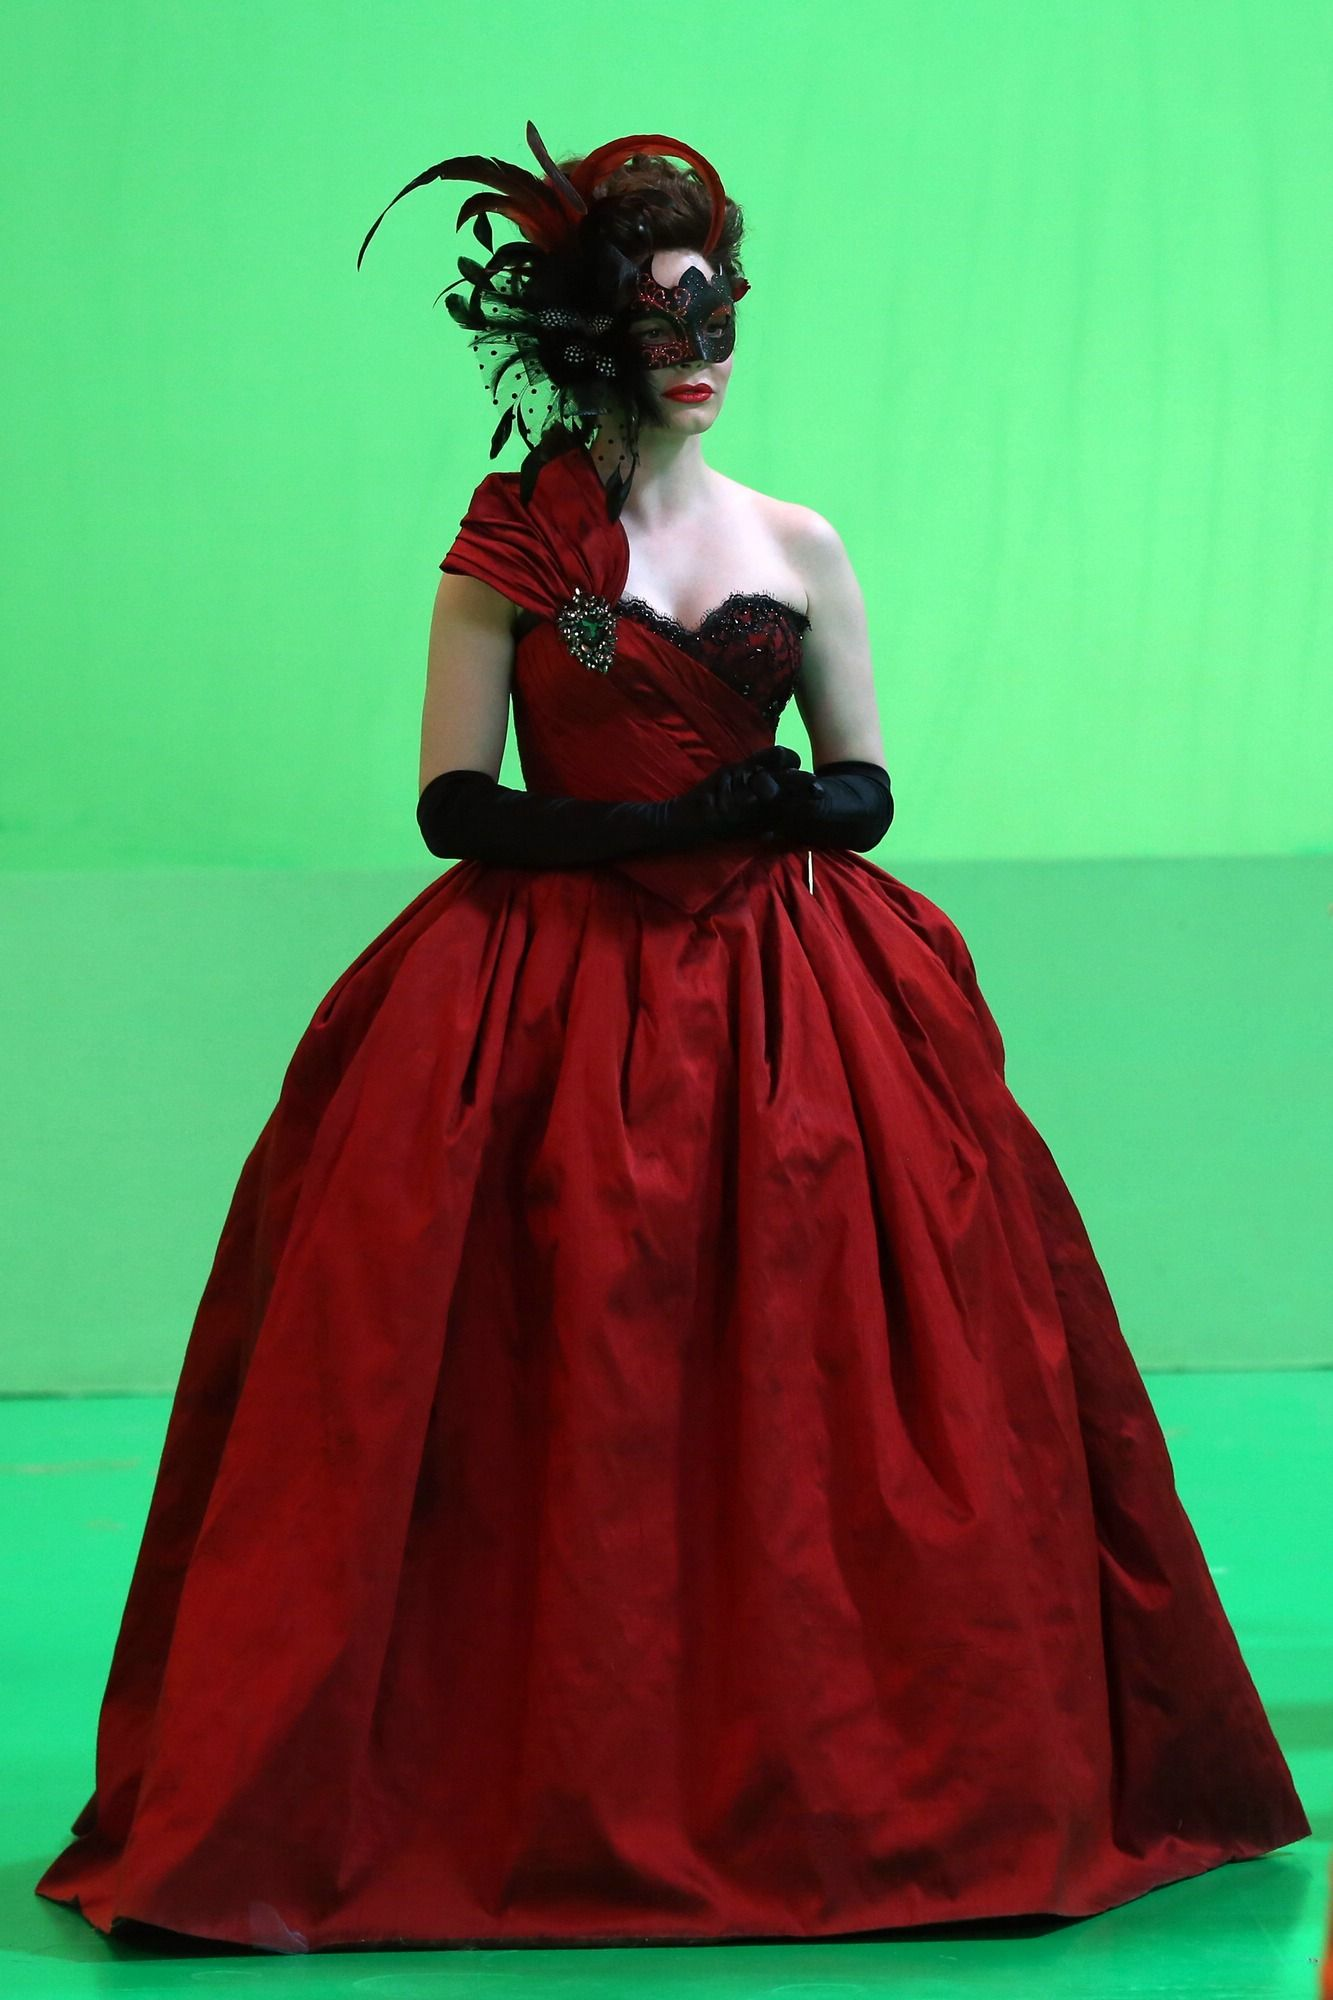 Young Cora - Once Upon a Time. I LOVE HER DREES. IT'S ONE OF MY FAVOURITE COSTUMES FROM OUAT.